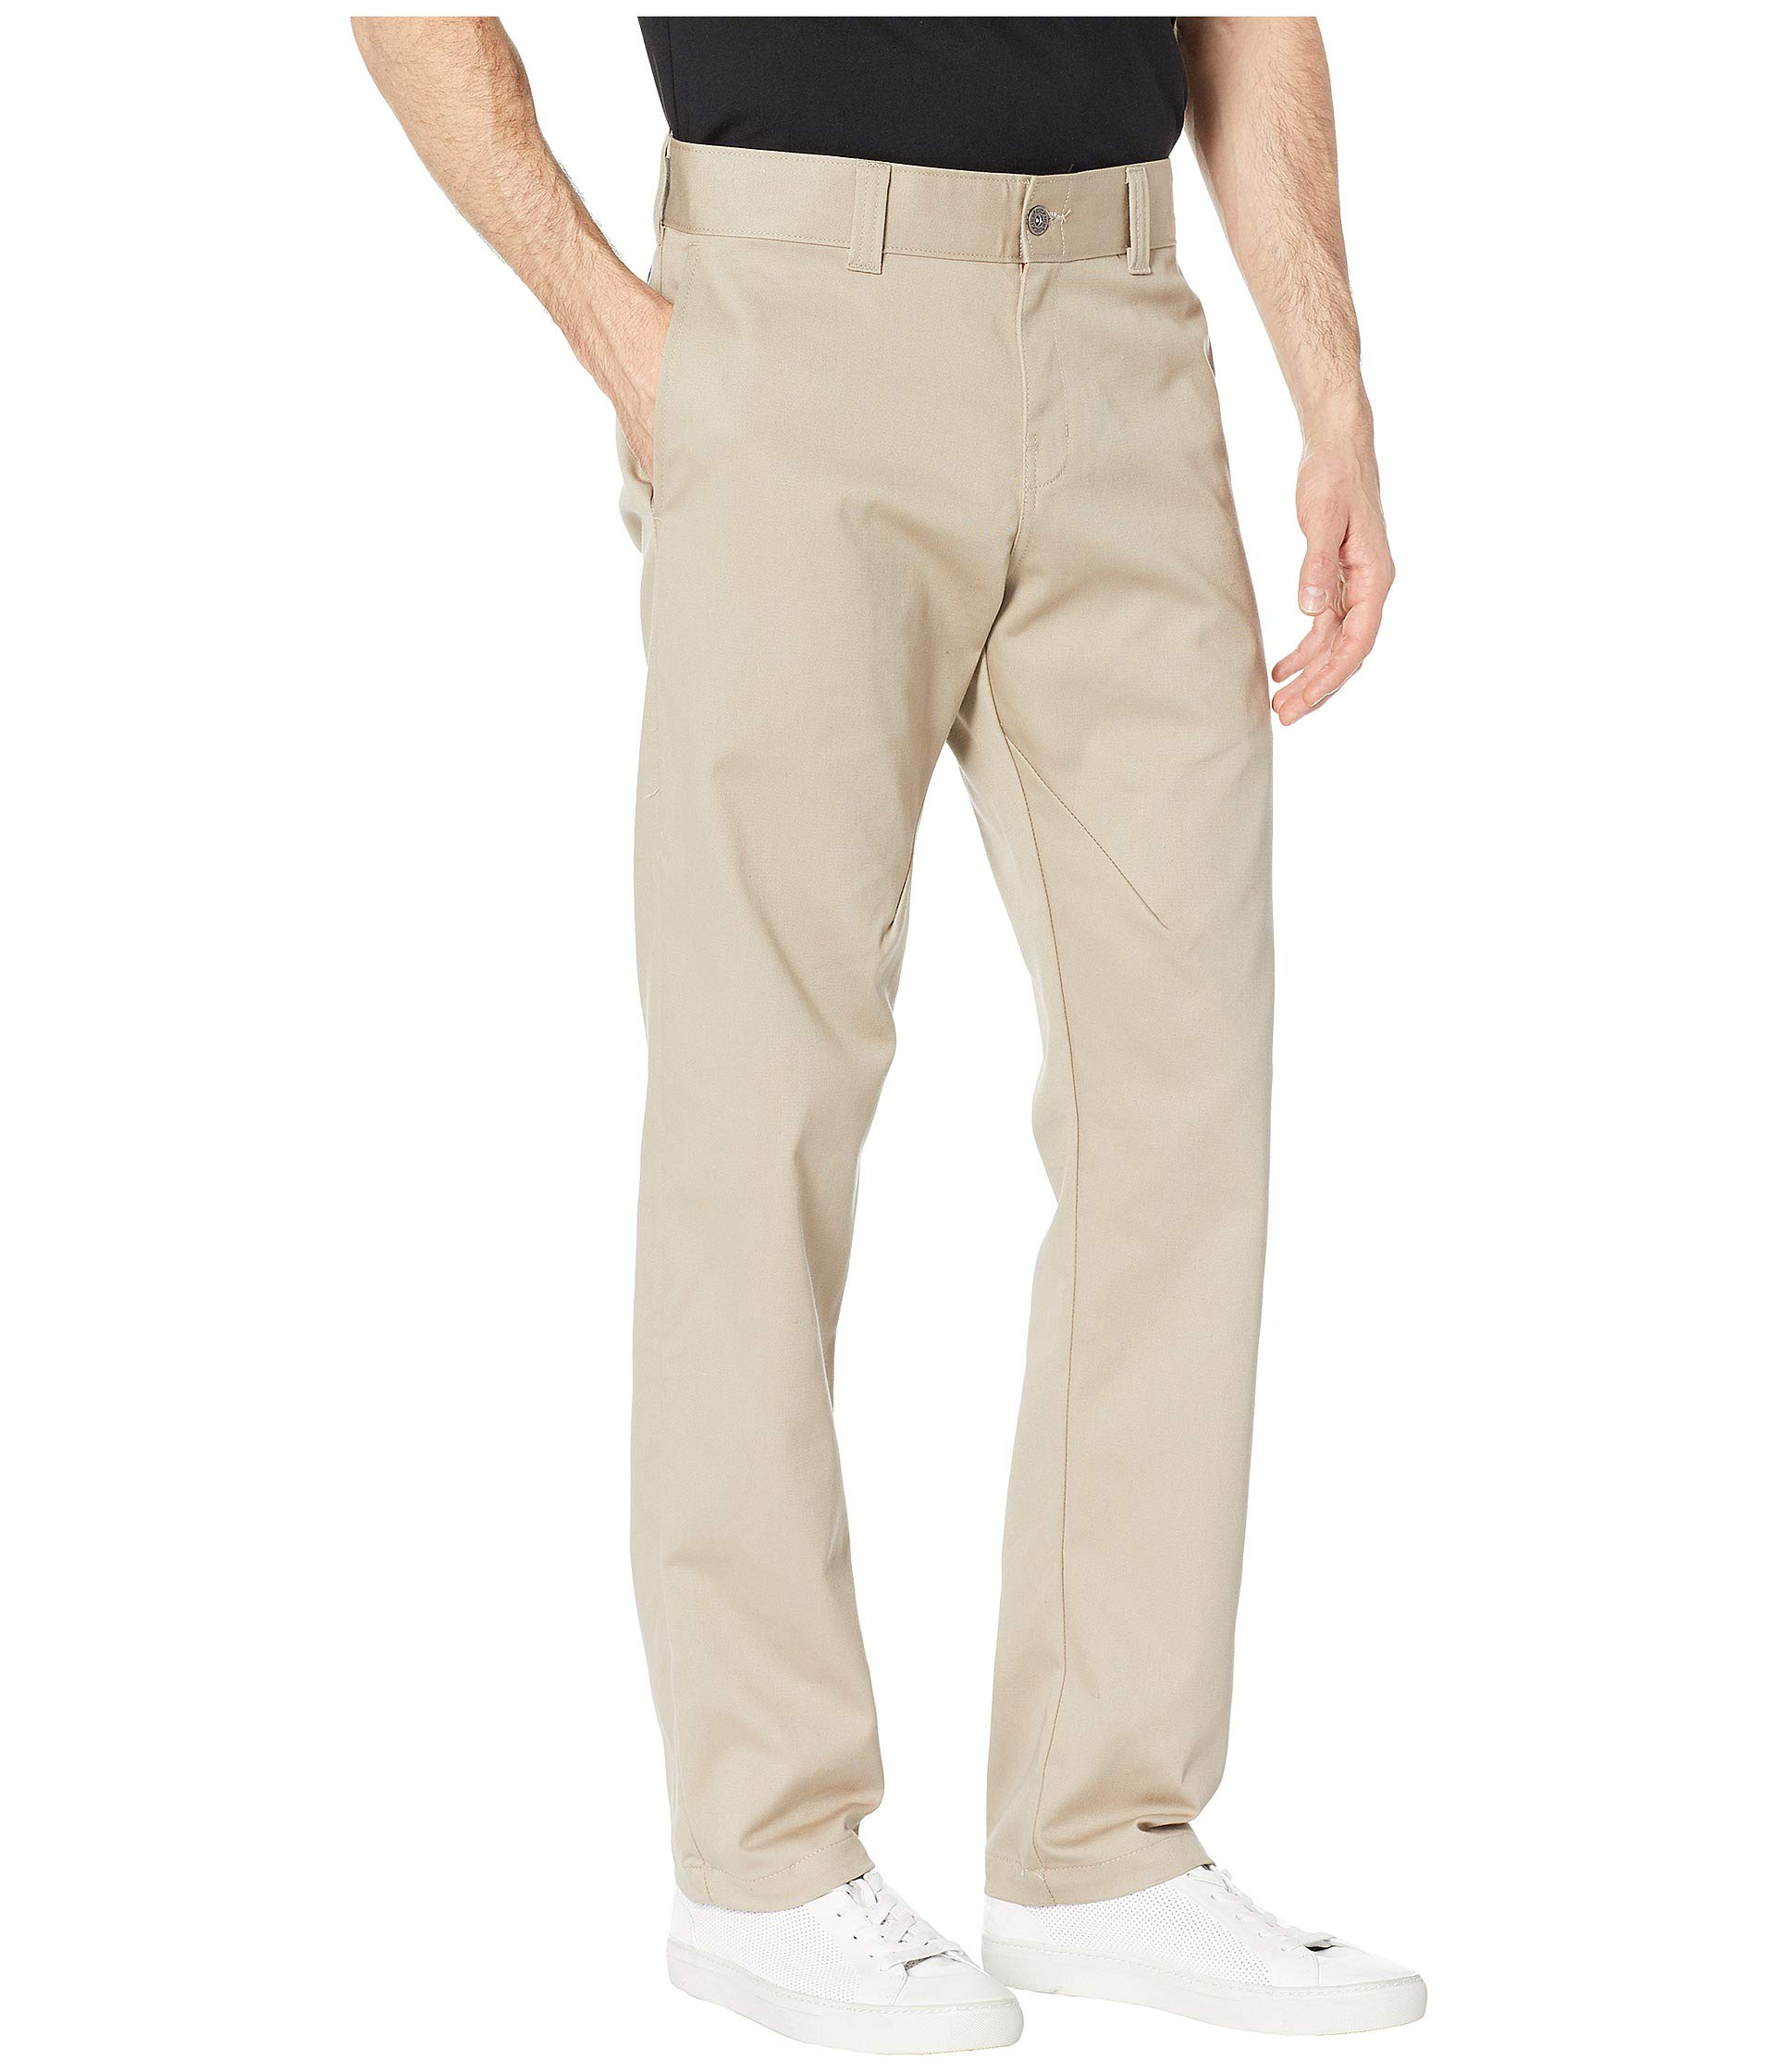 Sand Pants Tough Max 67 Flex Collection Twill Dickies Desert gqw7FfP8